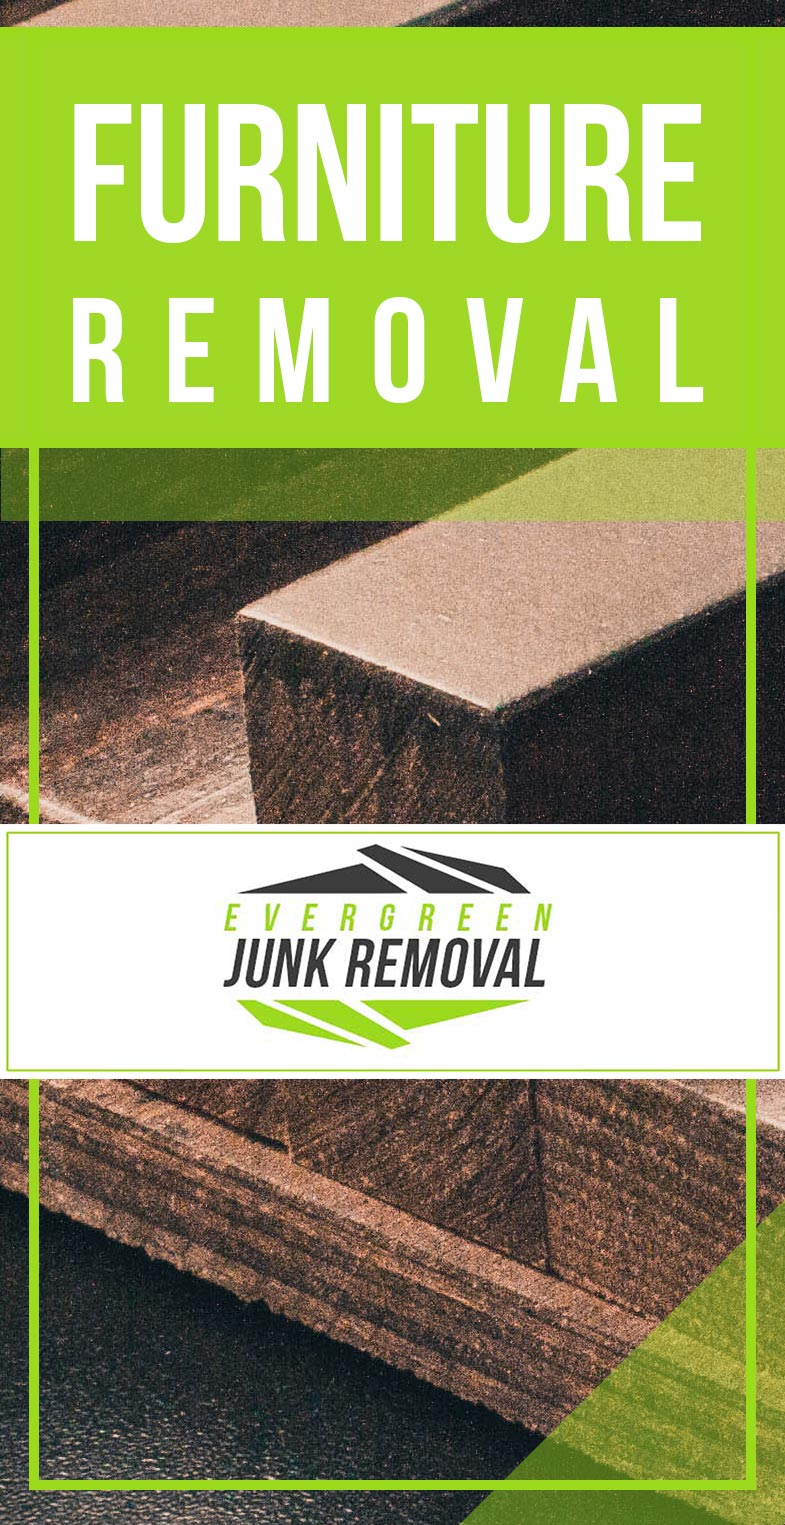 Humble Furniture Removal